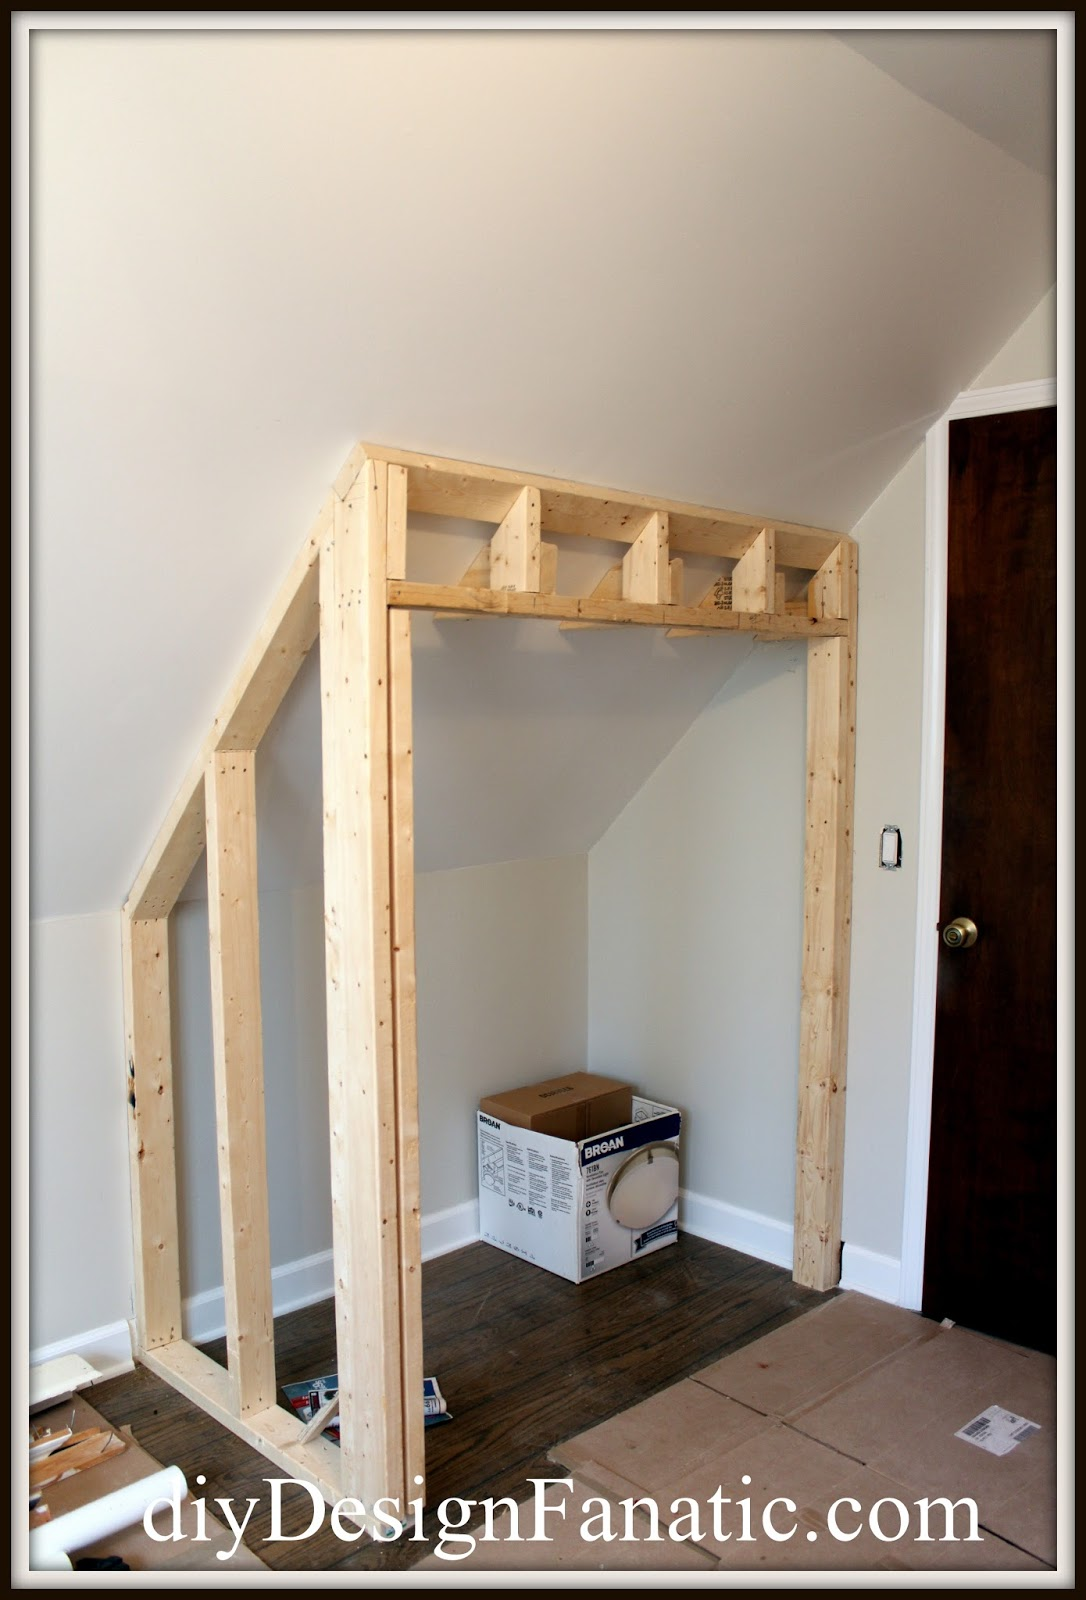 Diy design fanatic stealing floor space to build a closet Build your own bedroom wardrobes